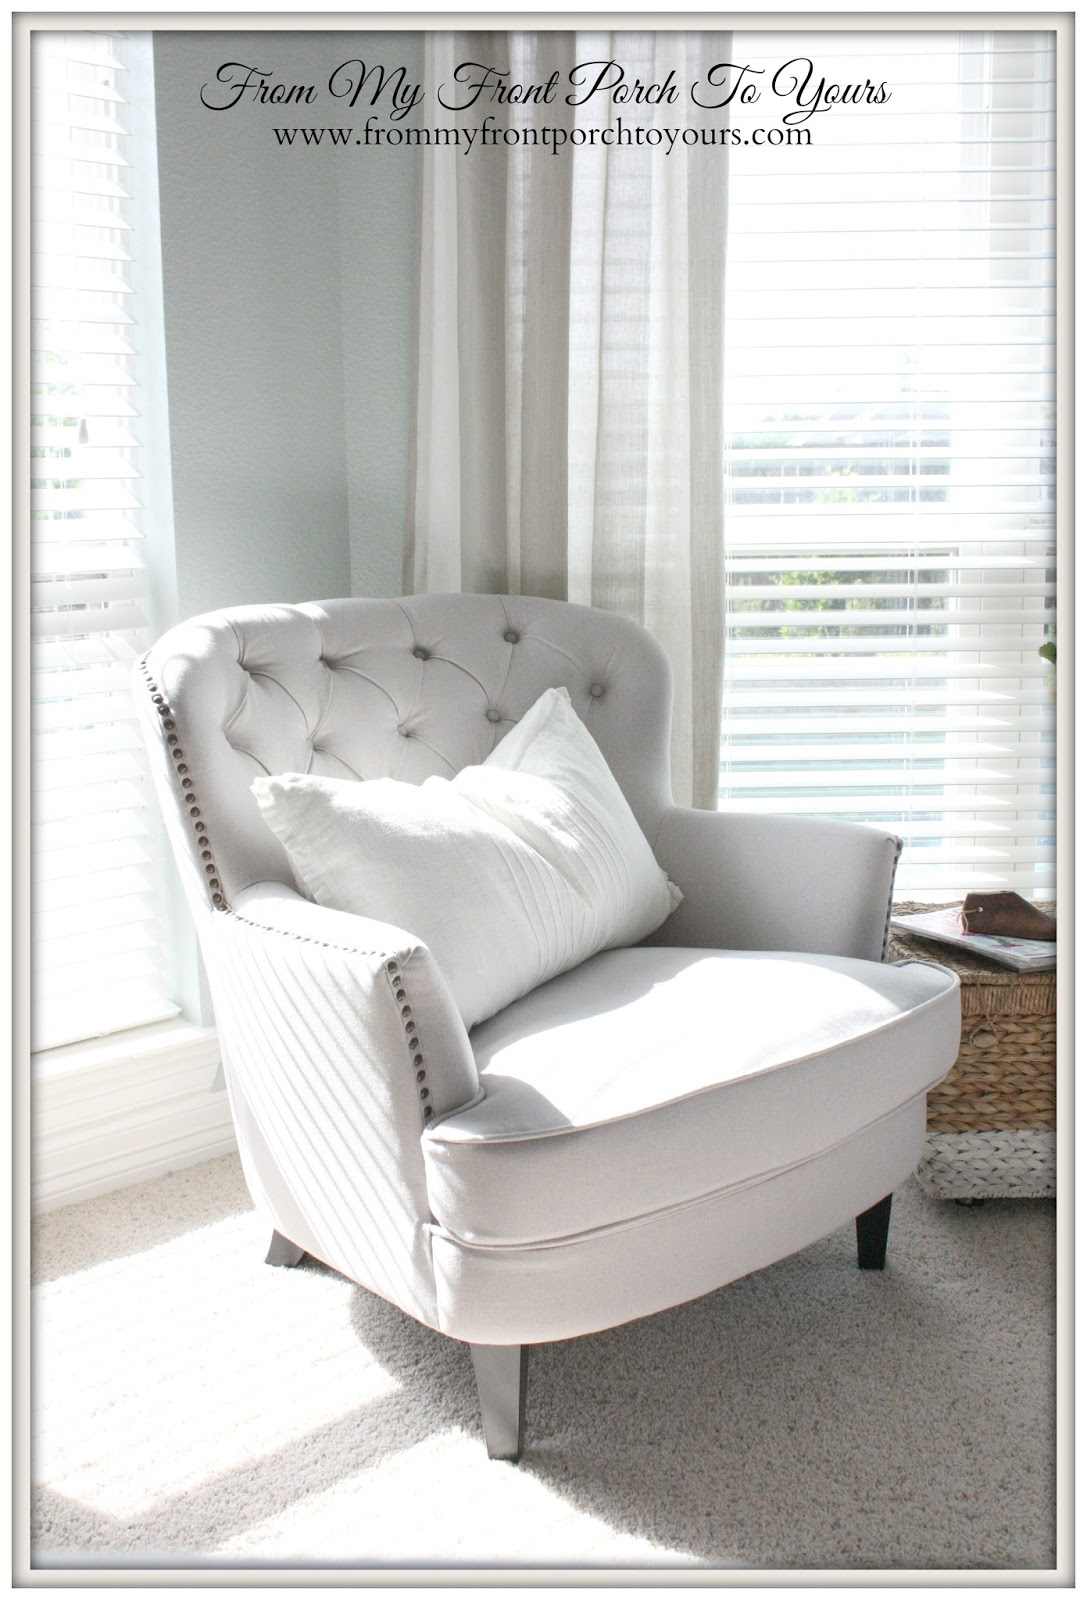 From My Front Porch To Yours- Bedroom Reading Nook- Joss & Main Chair